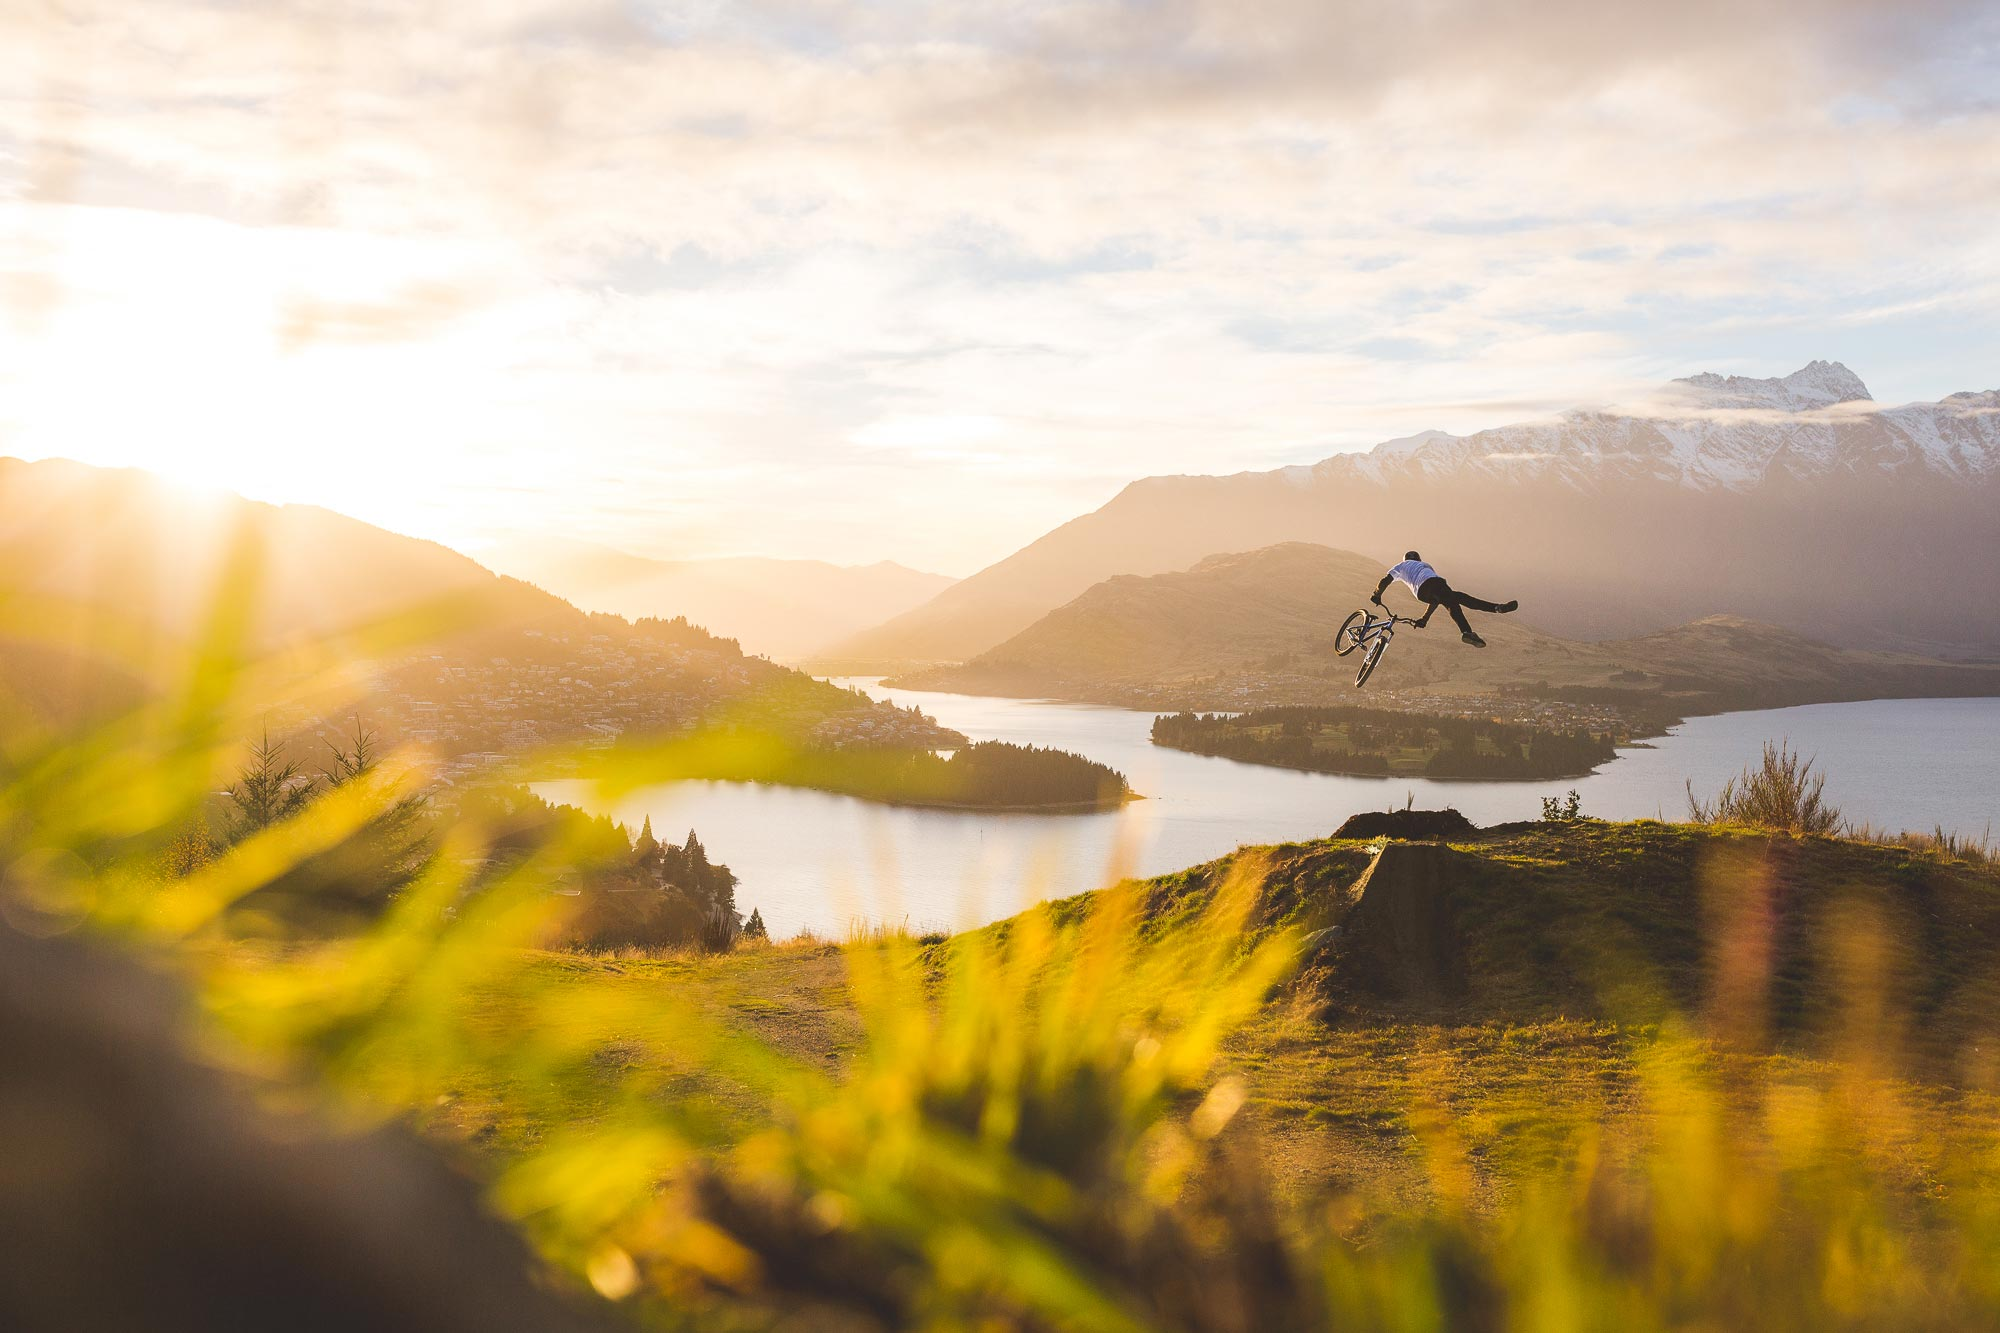 Mountain bike rider Emmerson Wilkins super whips jump overlooking Queenstown at sunrise